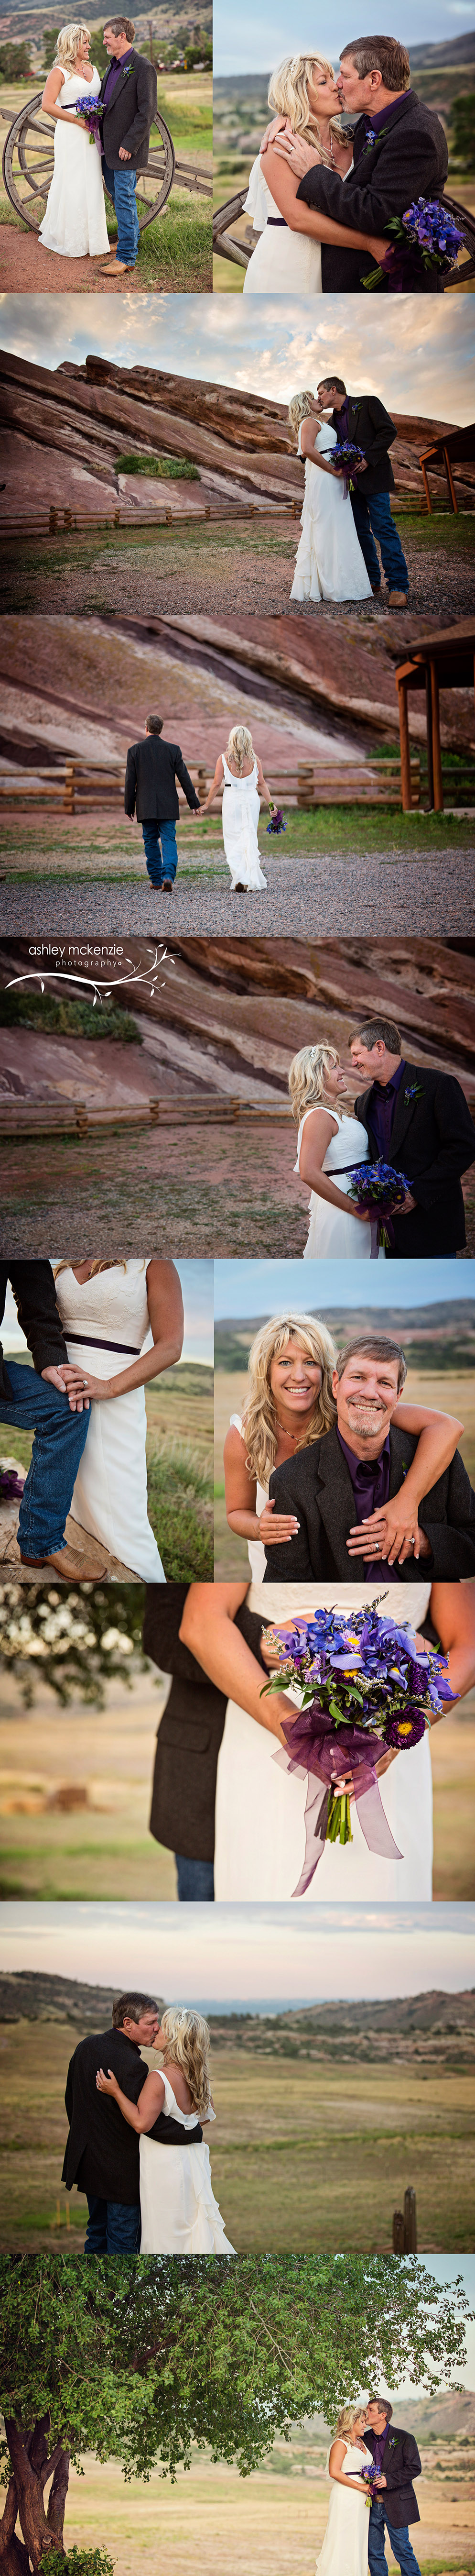 Wedding Photography by Ashley McKenzie Photography in Littleton, Colorado